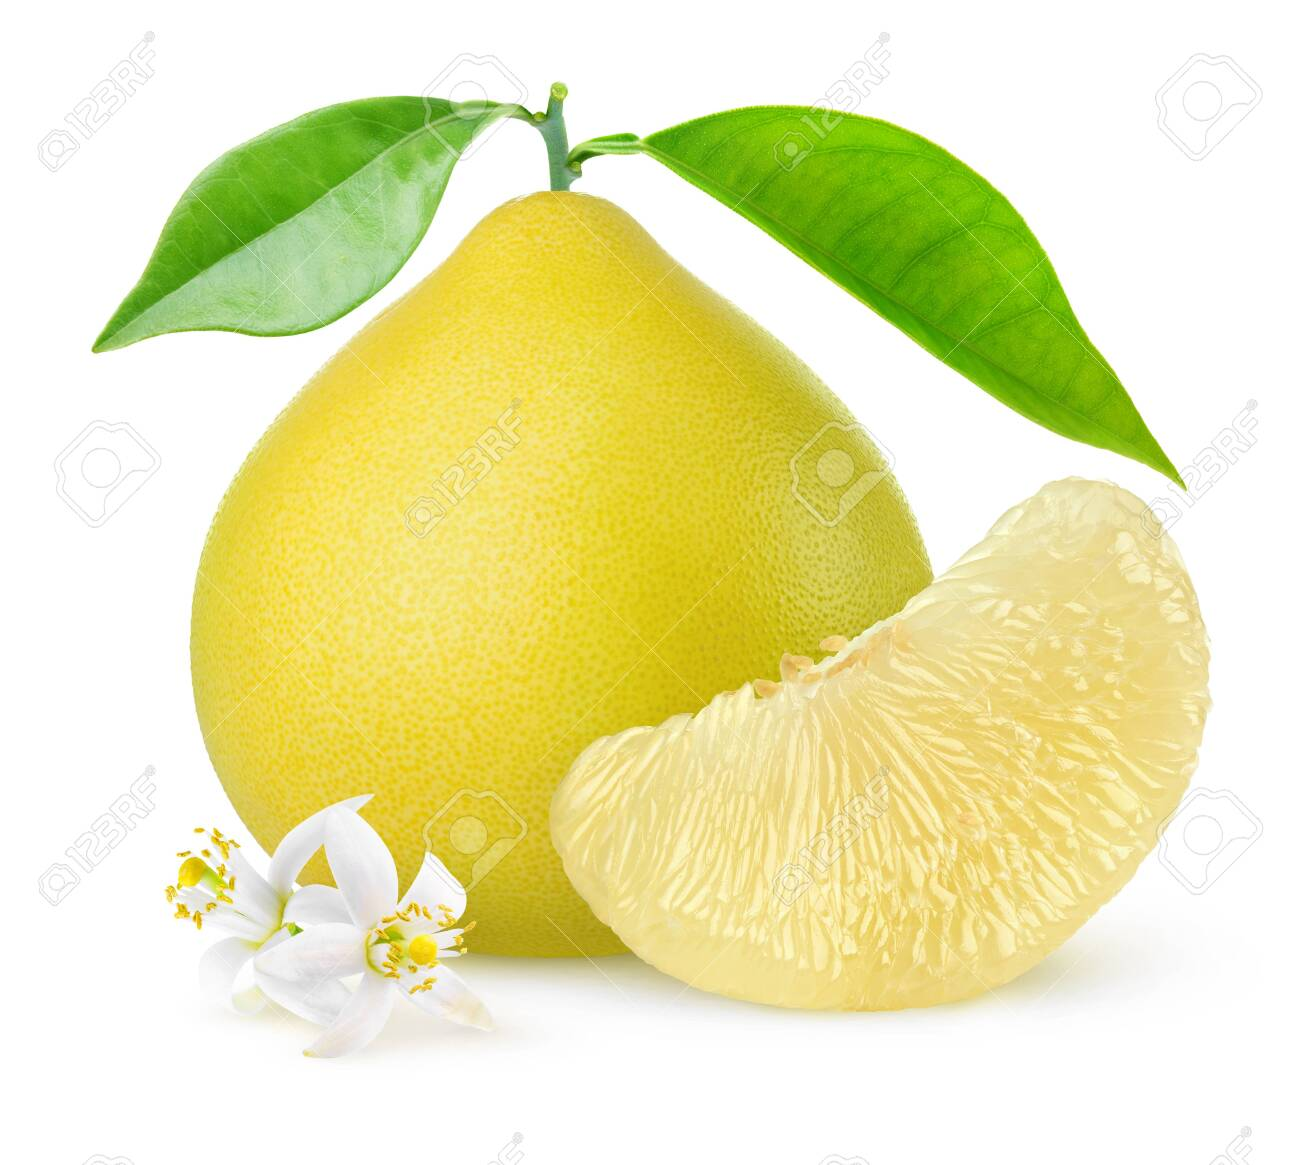 Isolated pomelo citrus fruit. One whole pomelo and a peeled segment with leaves and flowers isolated on white background - 123930440